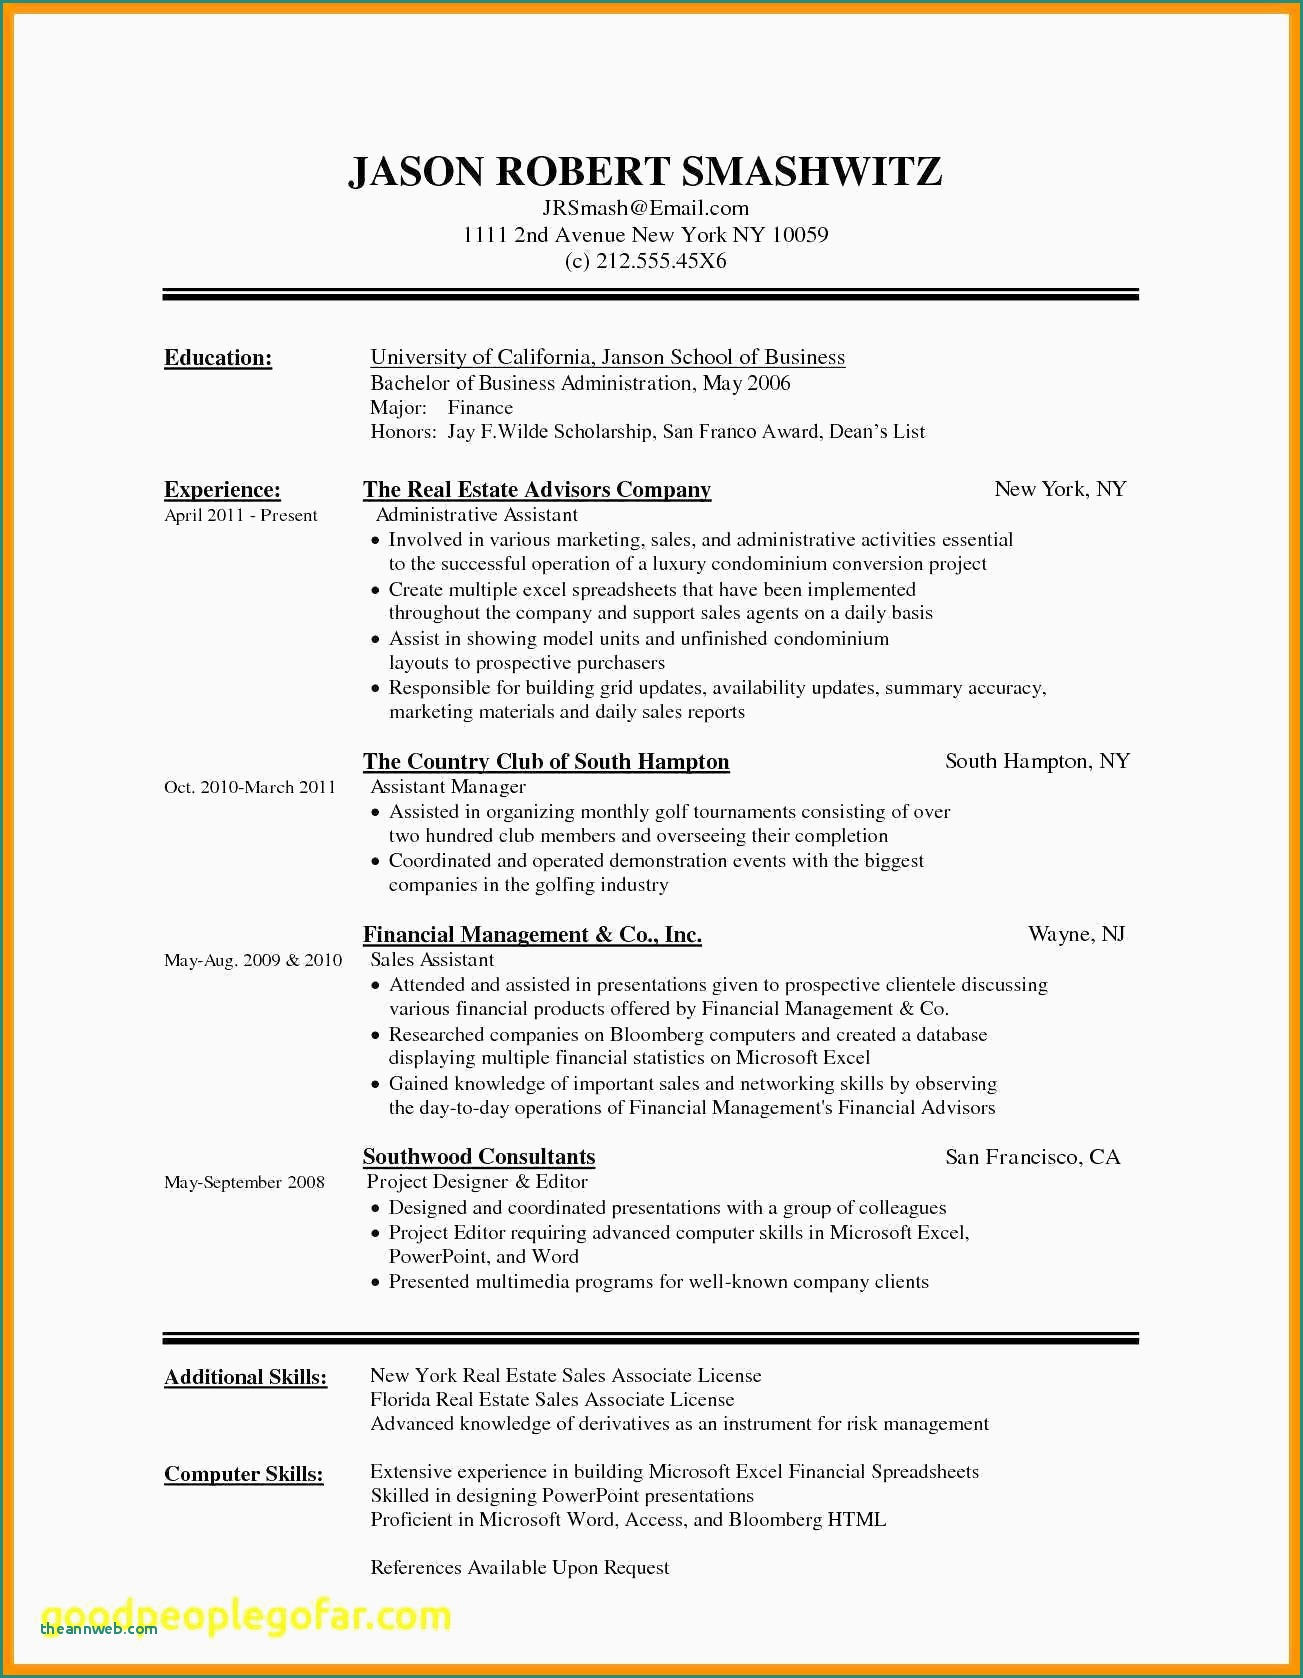 Microsoft Resume Wizard Free Download - Resume Microsoft Word Free Download Resume Templates Microsoft